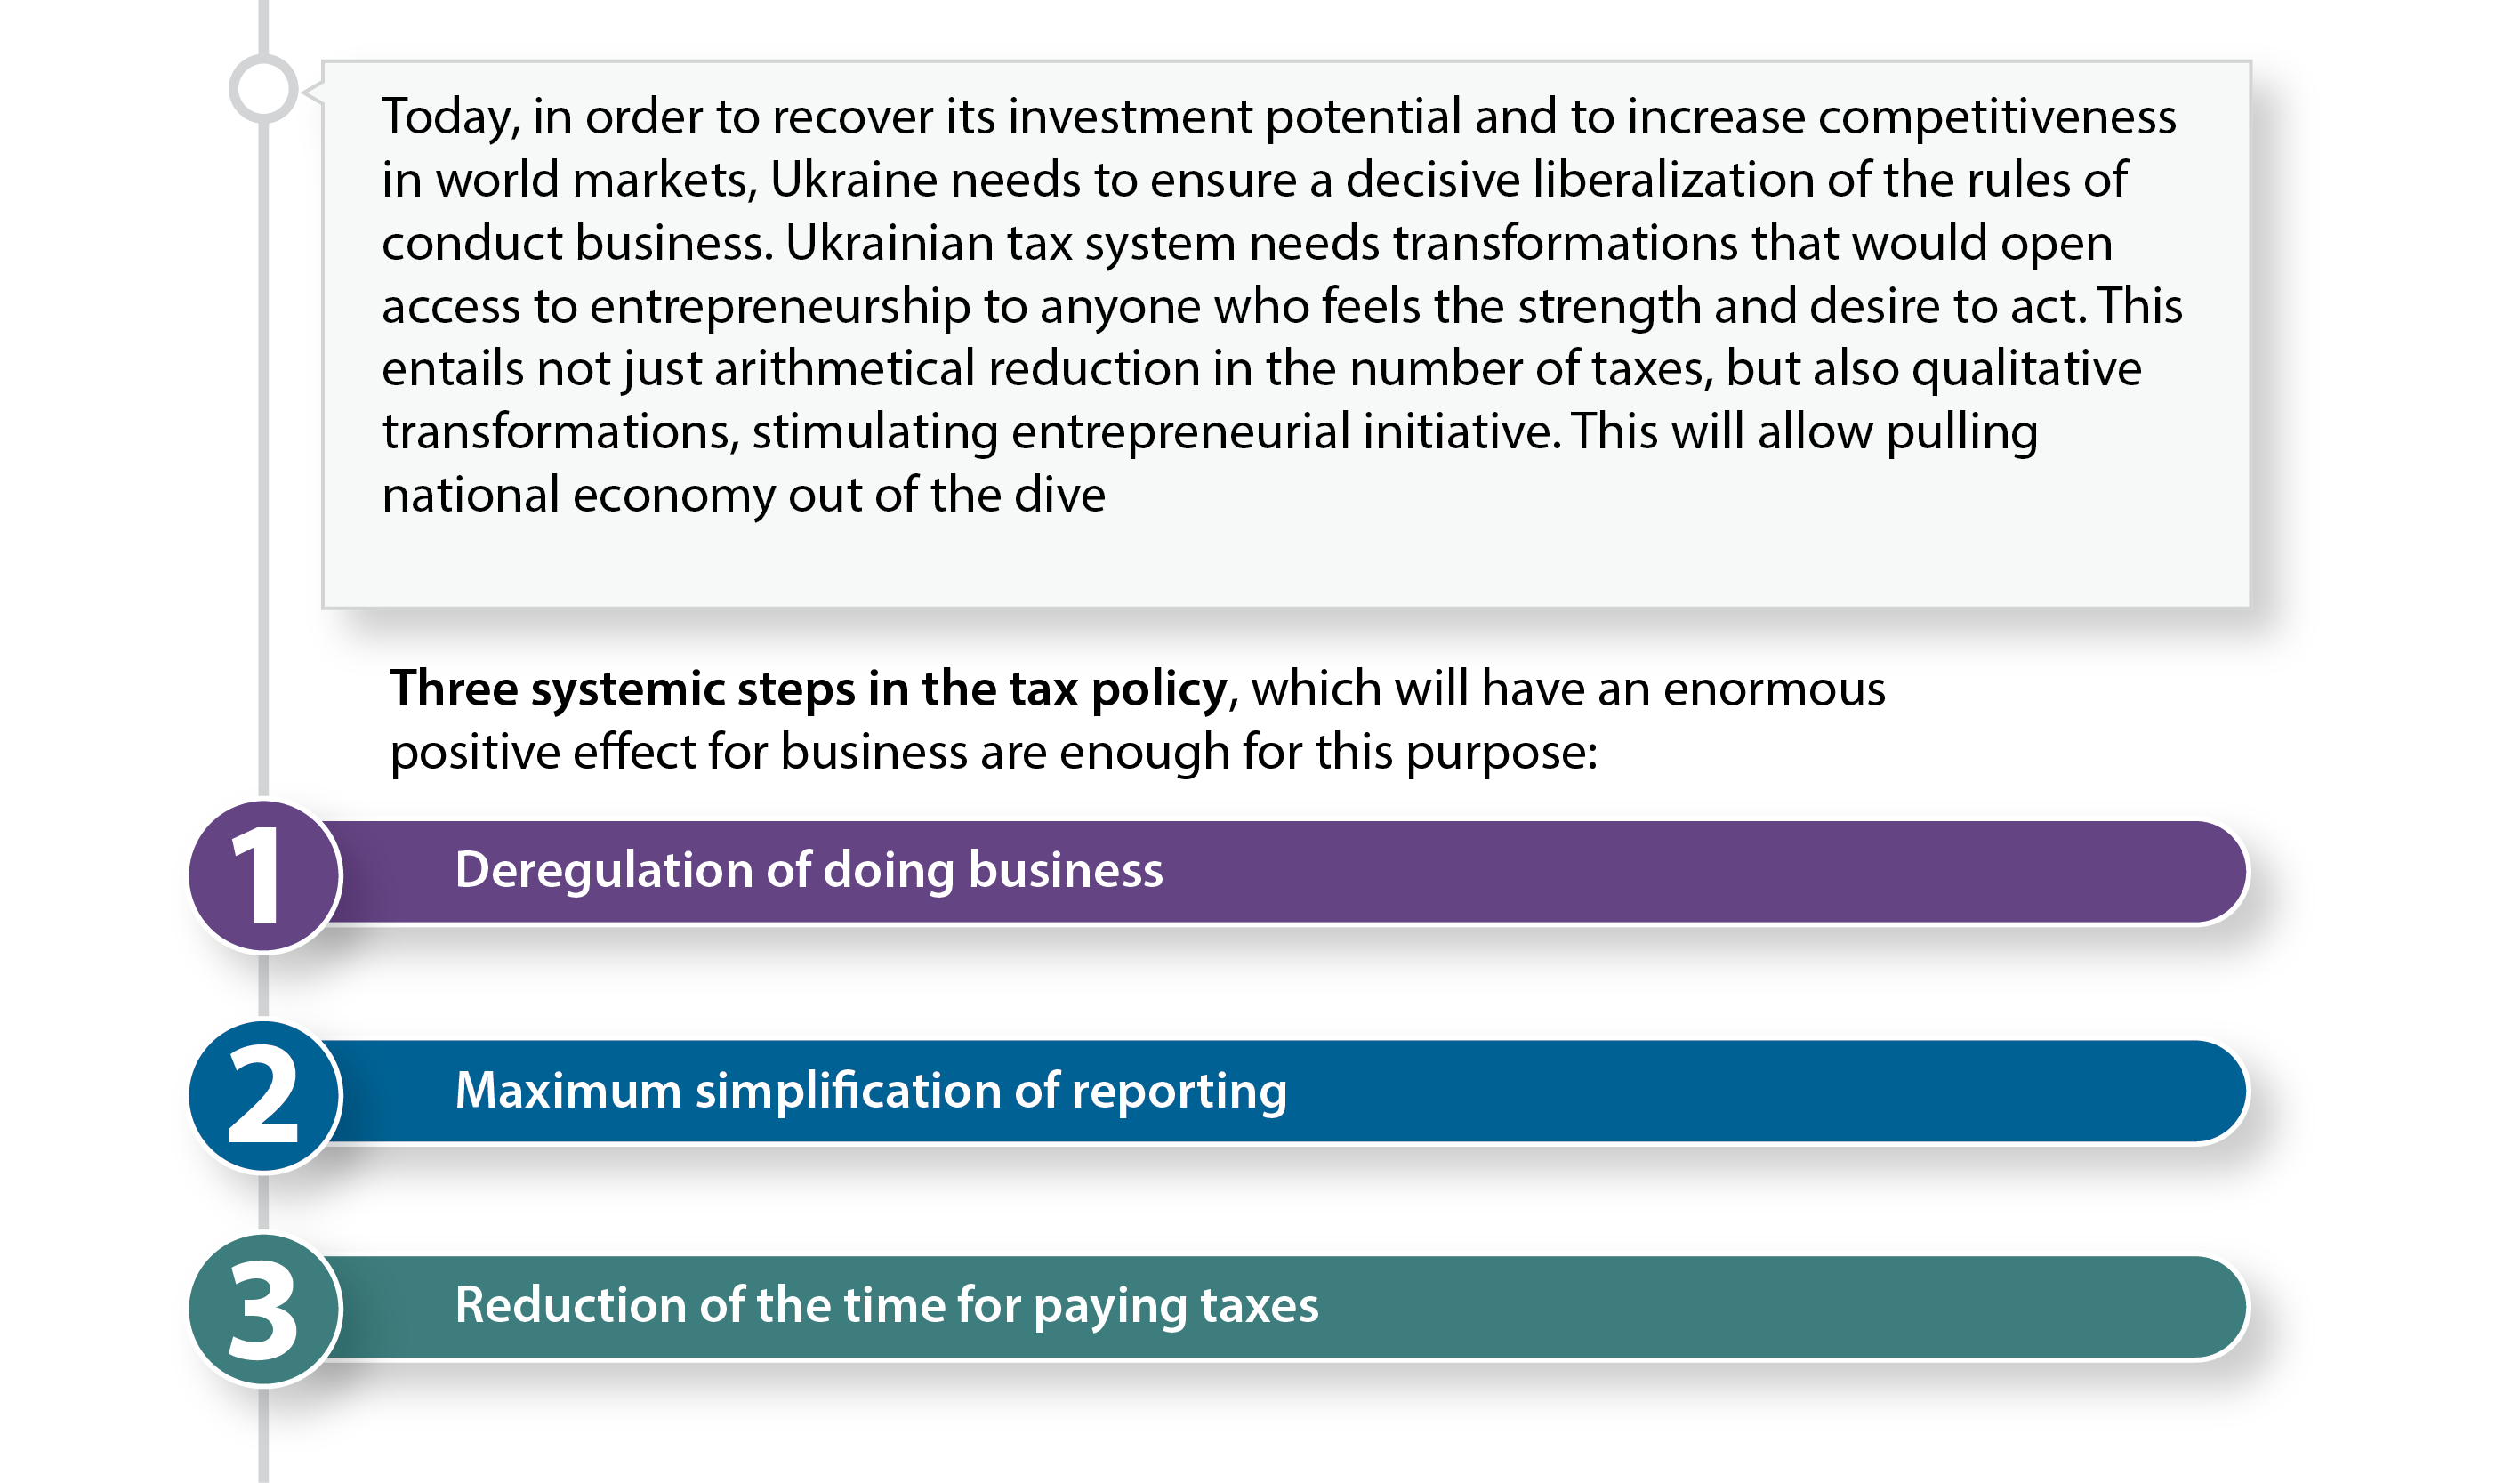 Three systemic steps in the tax policy